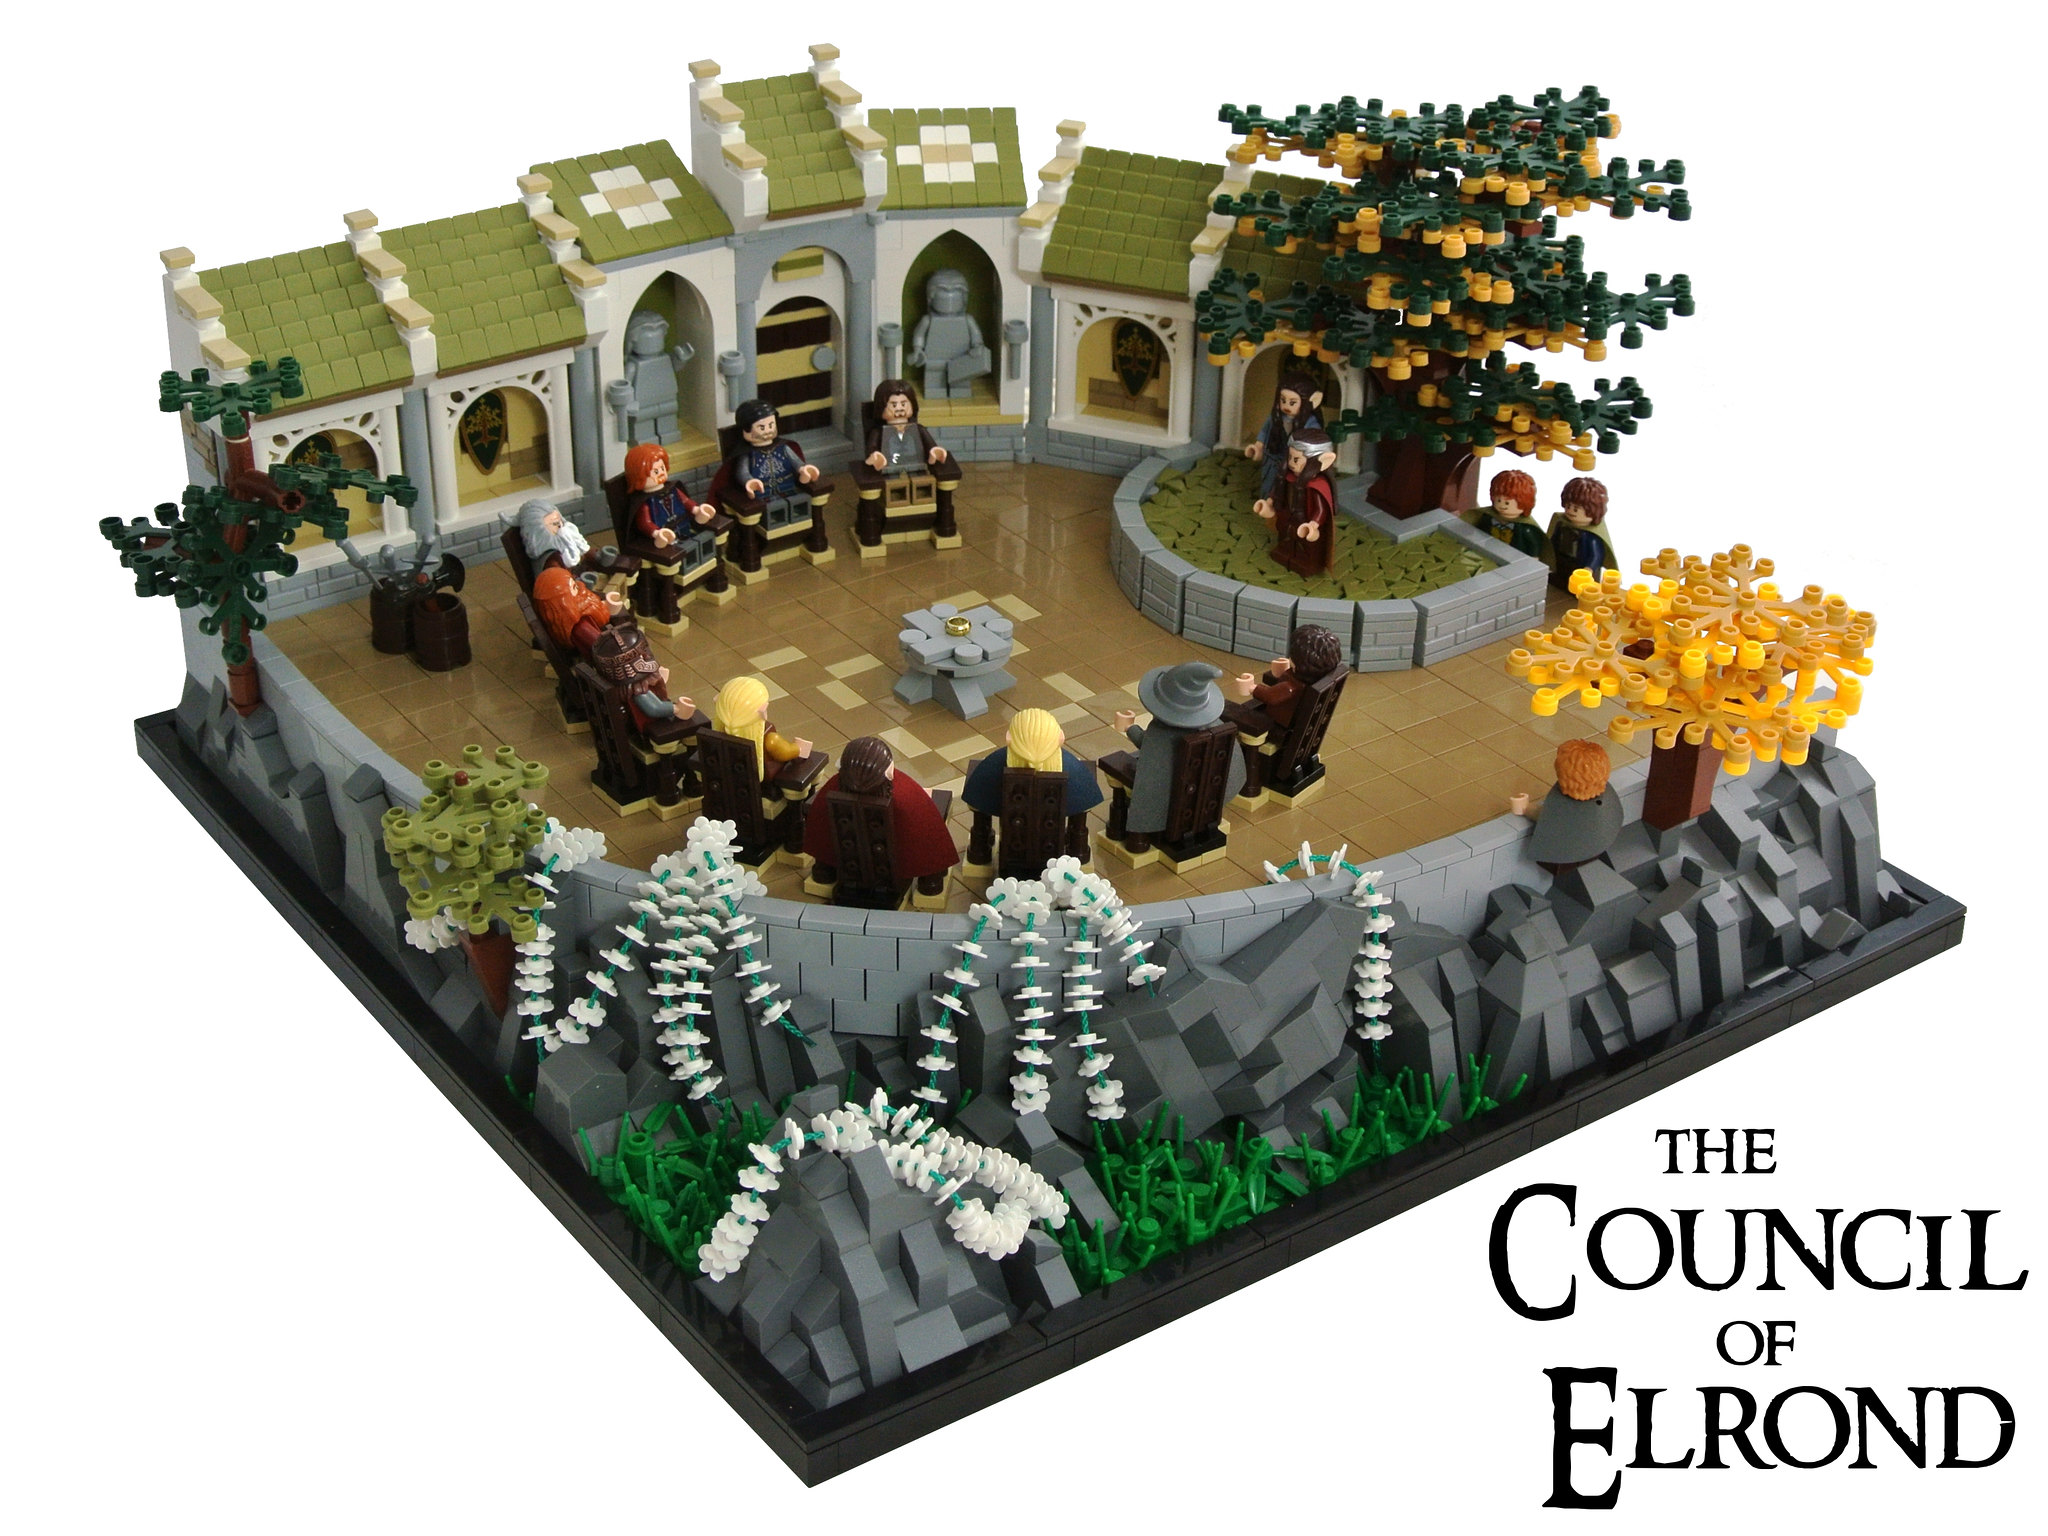 lego lord of the rings council of elrond